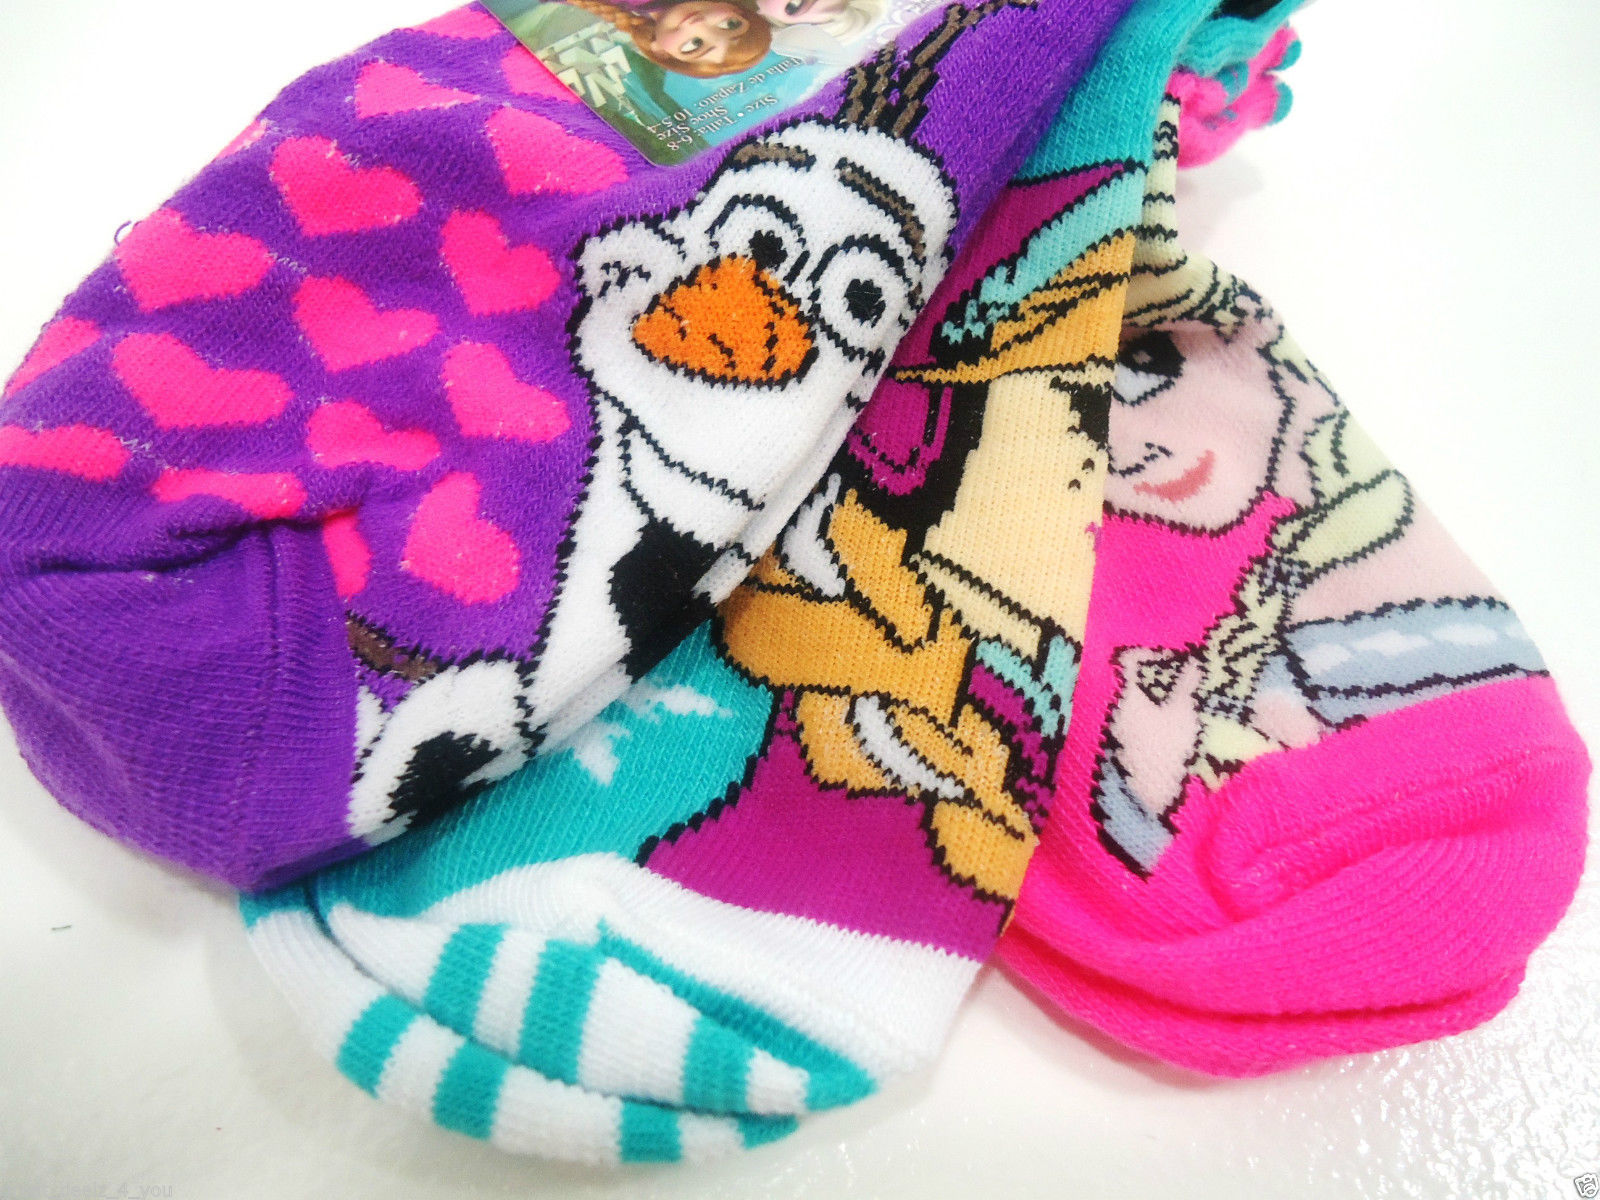 DISNEY - FROZEN - GIRL'S - (3) PACK - SOCKS - PURPLE - PINK - AQUA - BRAND NEW image 2